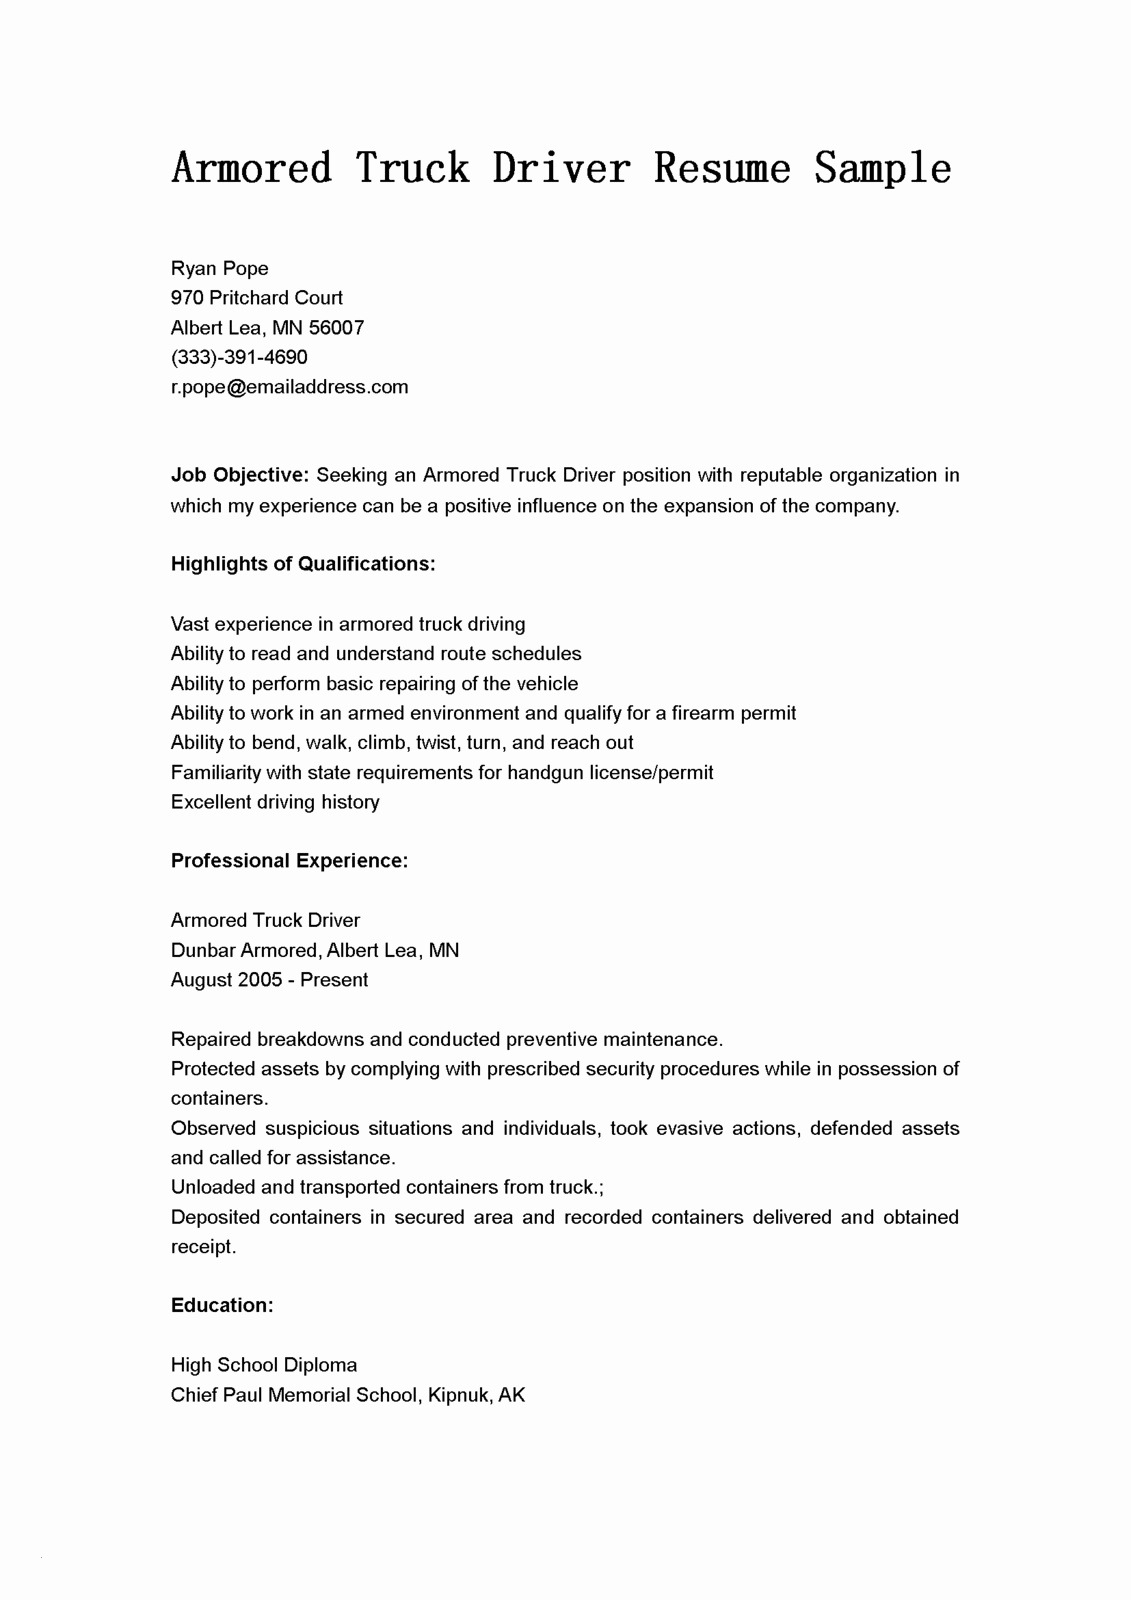 Truck Driver Job Description for Resume - Delivery Driver Skills for Resume Fresh Personal Driver Job